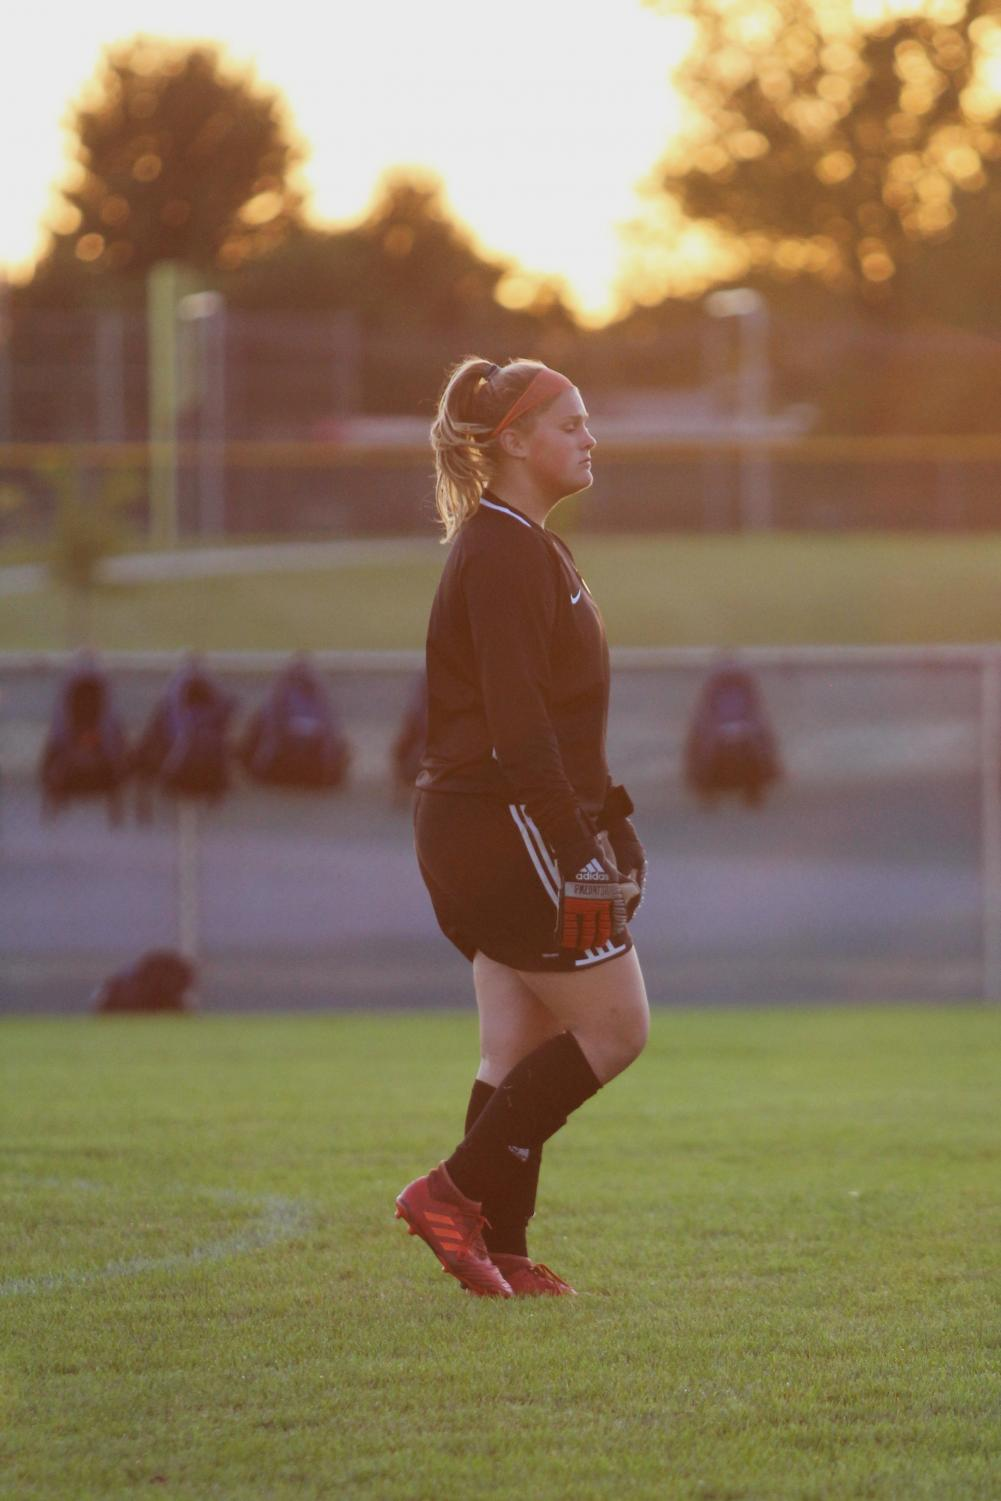 Tatum Damron (11) watches the players anticipating their next move in the first game of the season against Crown Point.  Her determination and skills quickly showed on the field as she protected the net and her team.